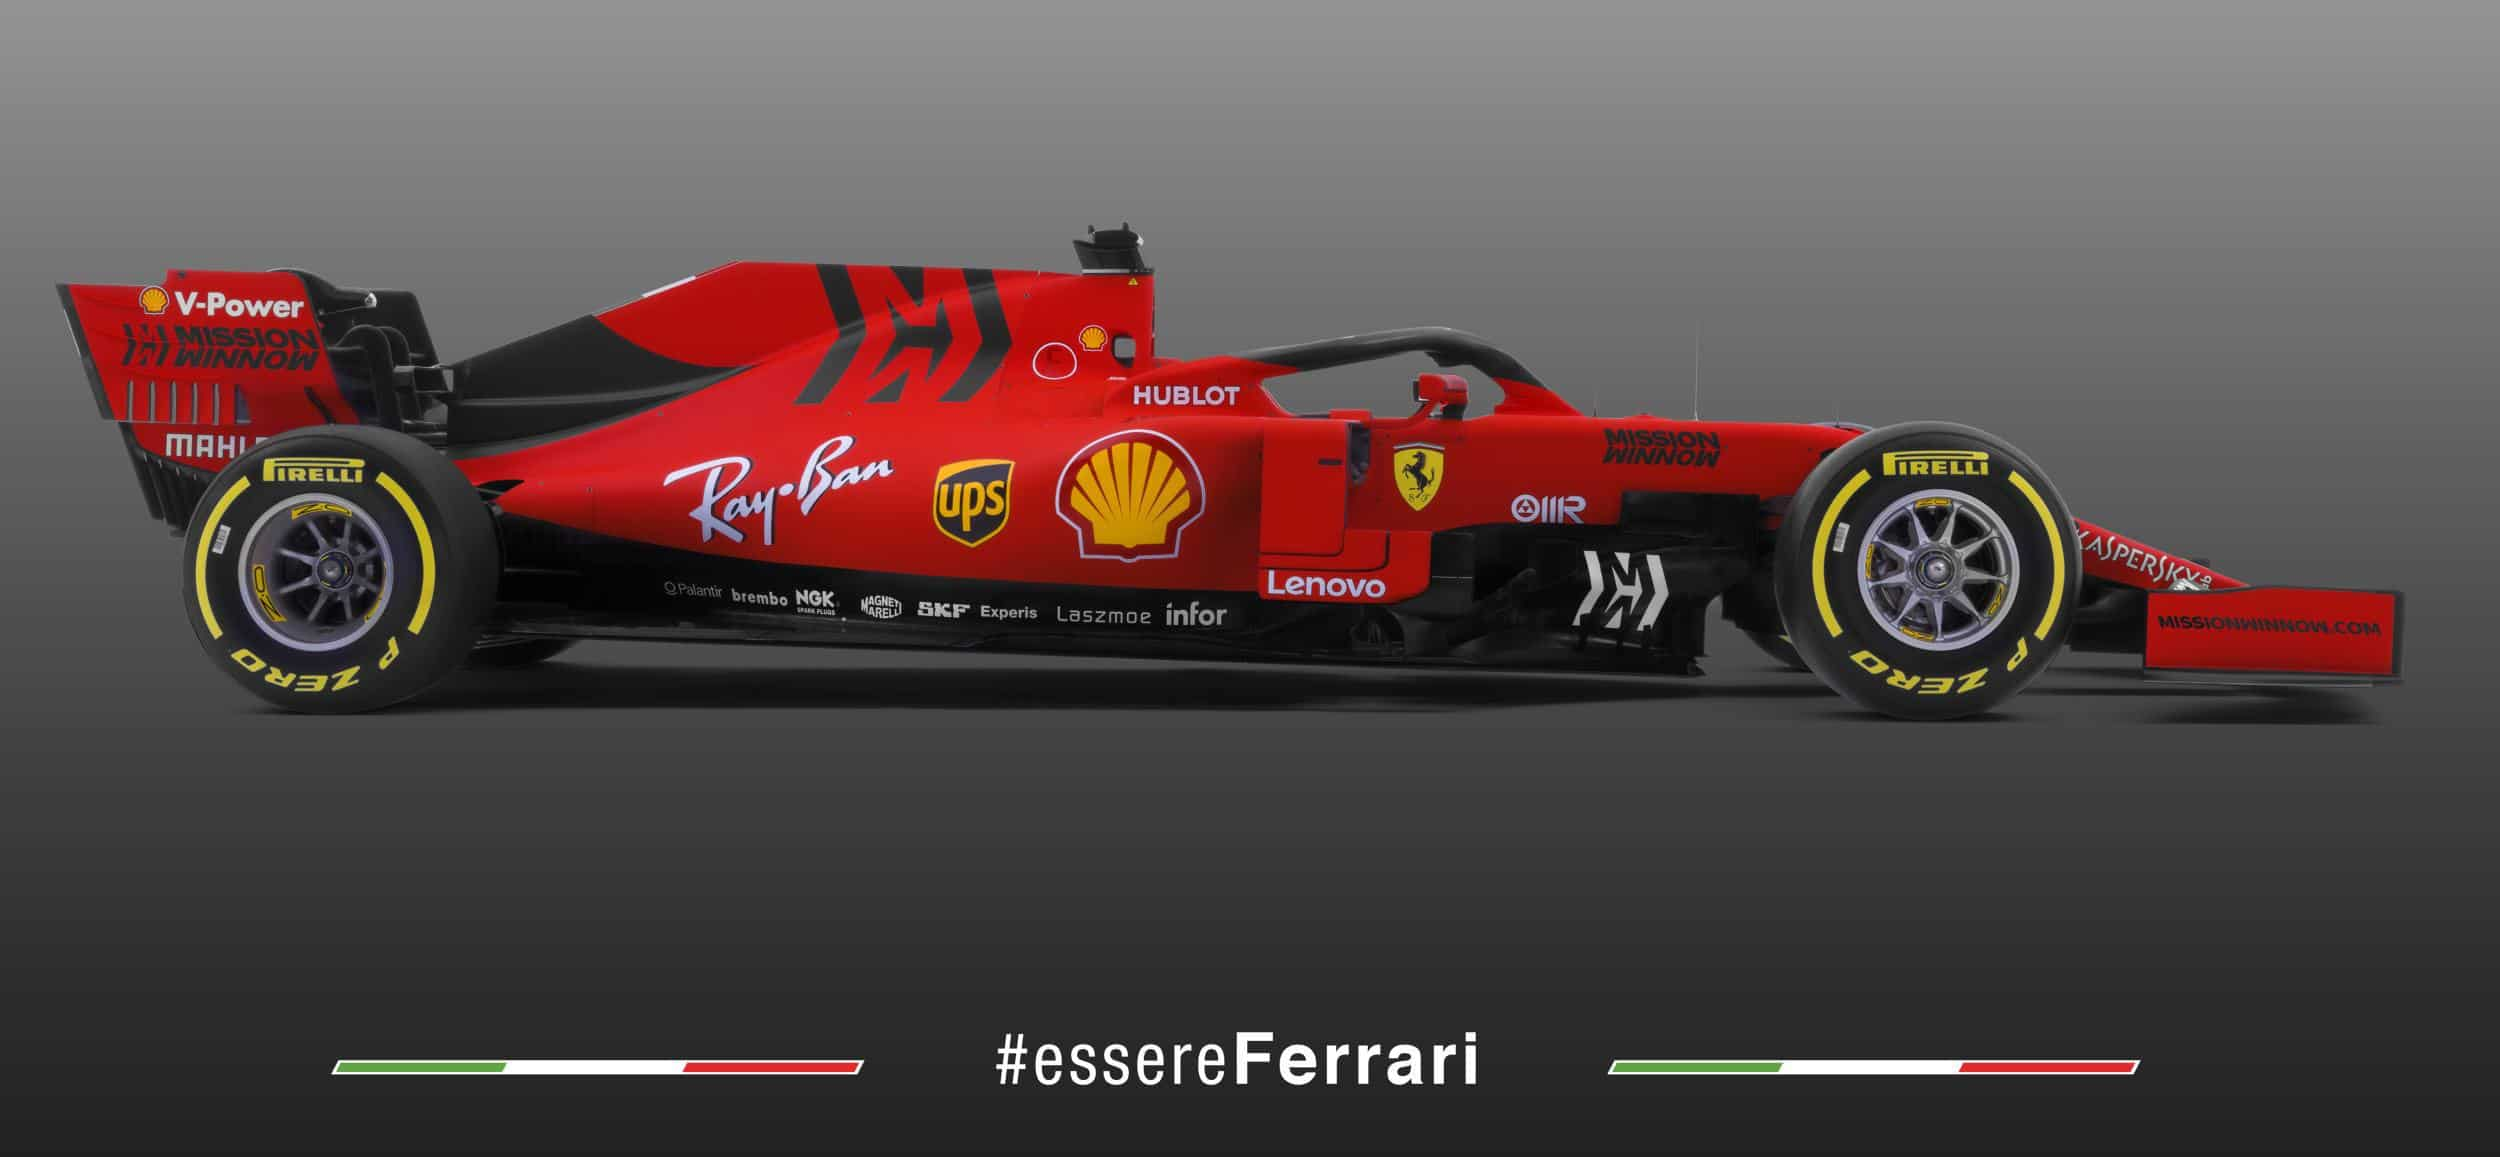 2019 Ferrari SF90 studio photo right side Photo Ferrari